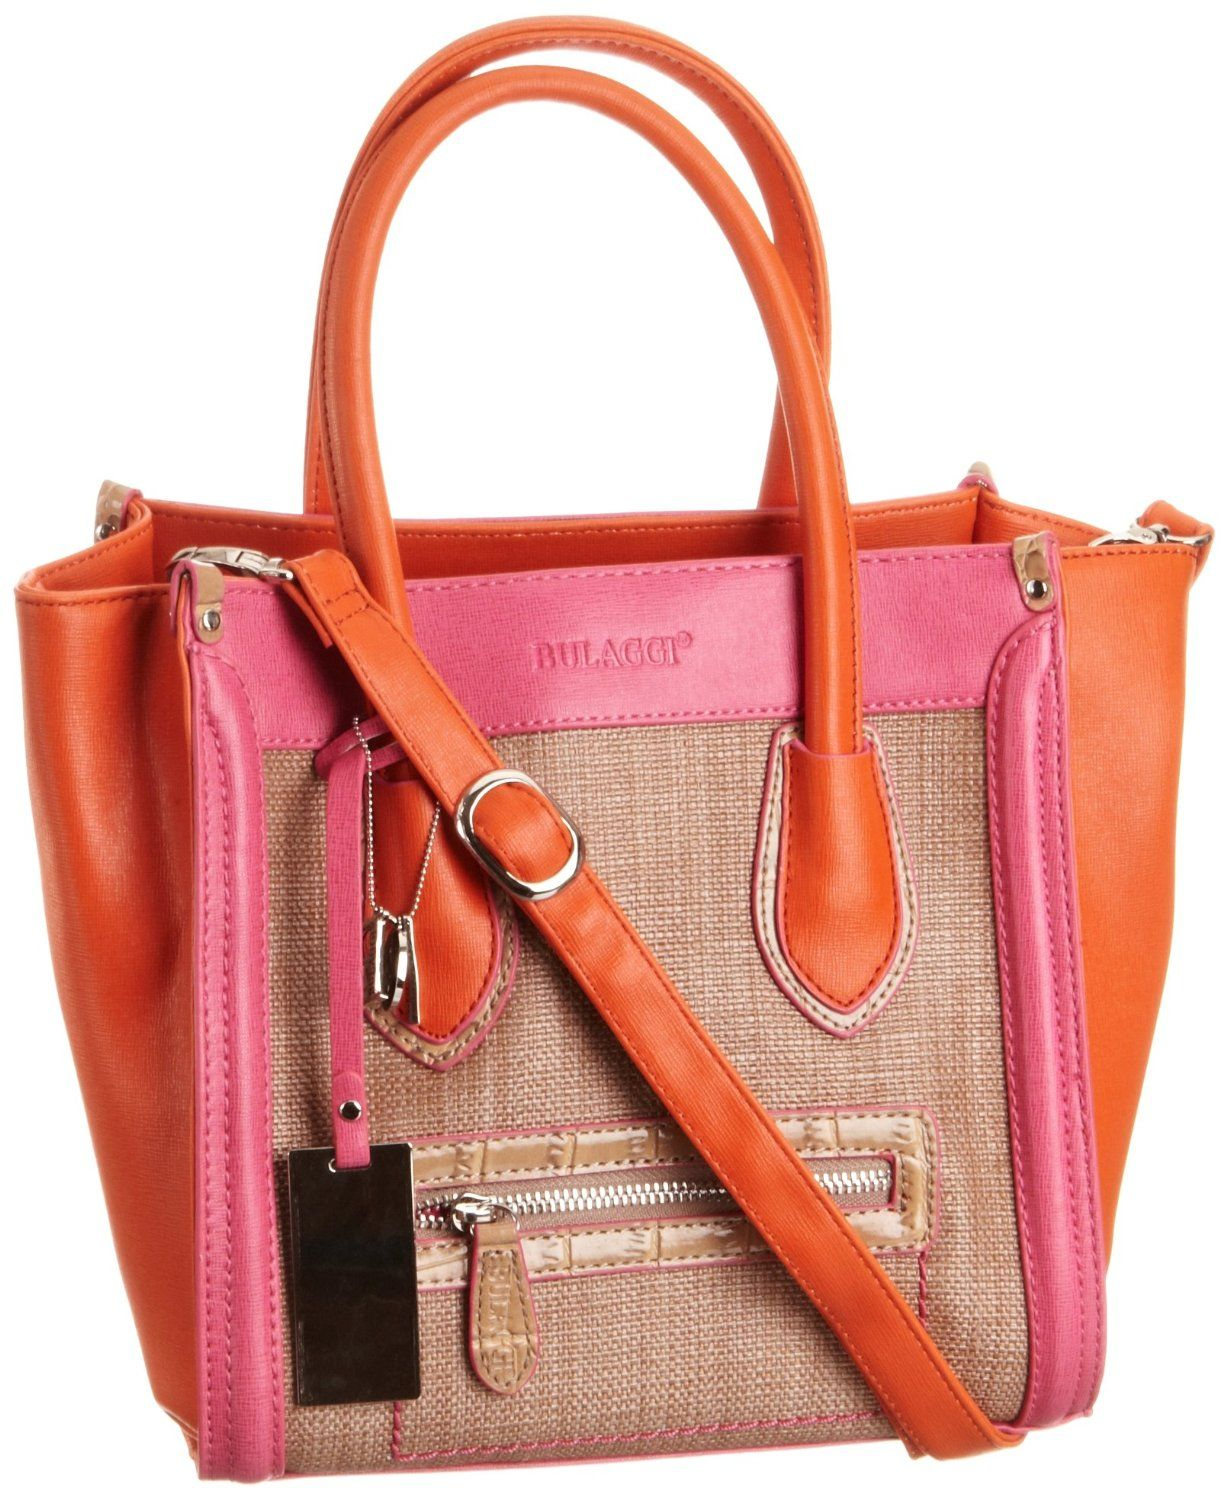 Bulaggi The Bag Women's 46000 Handbag | Handbags | Pinterest ...